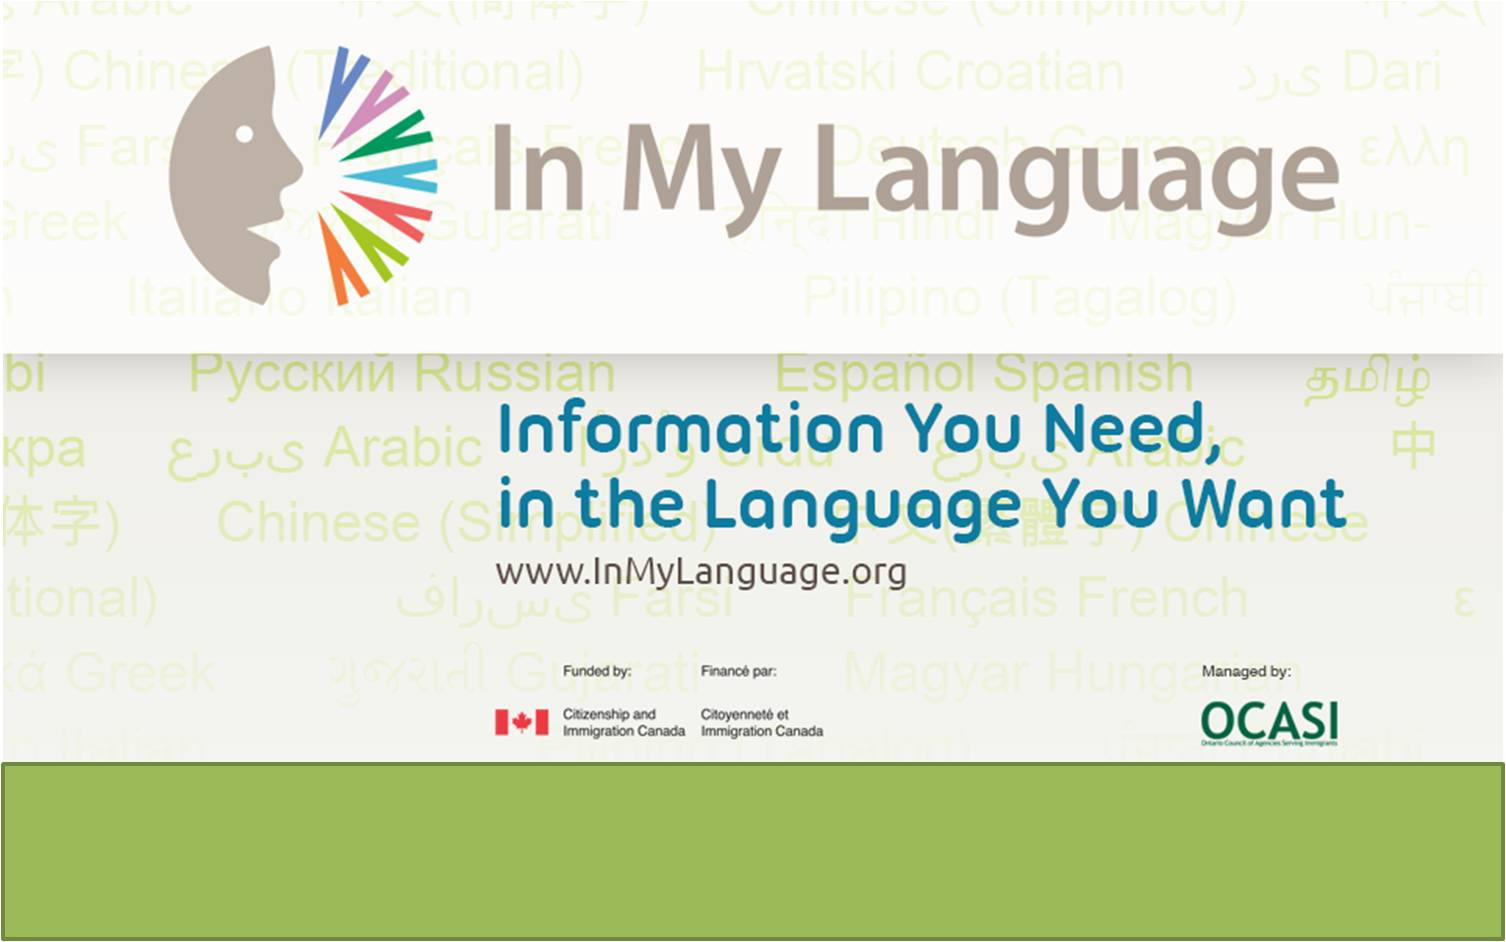 Information You Need in the Language You Want